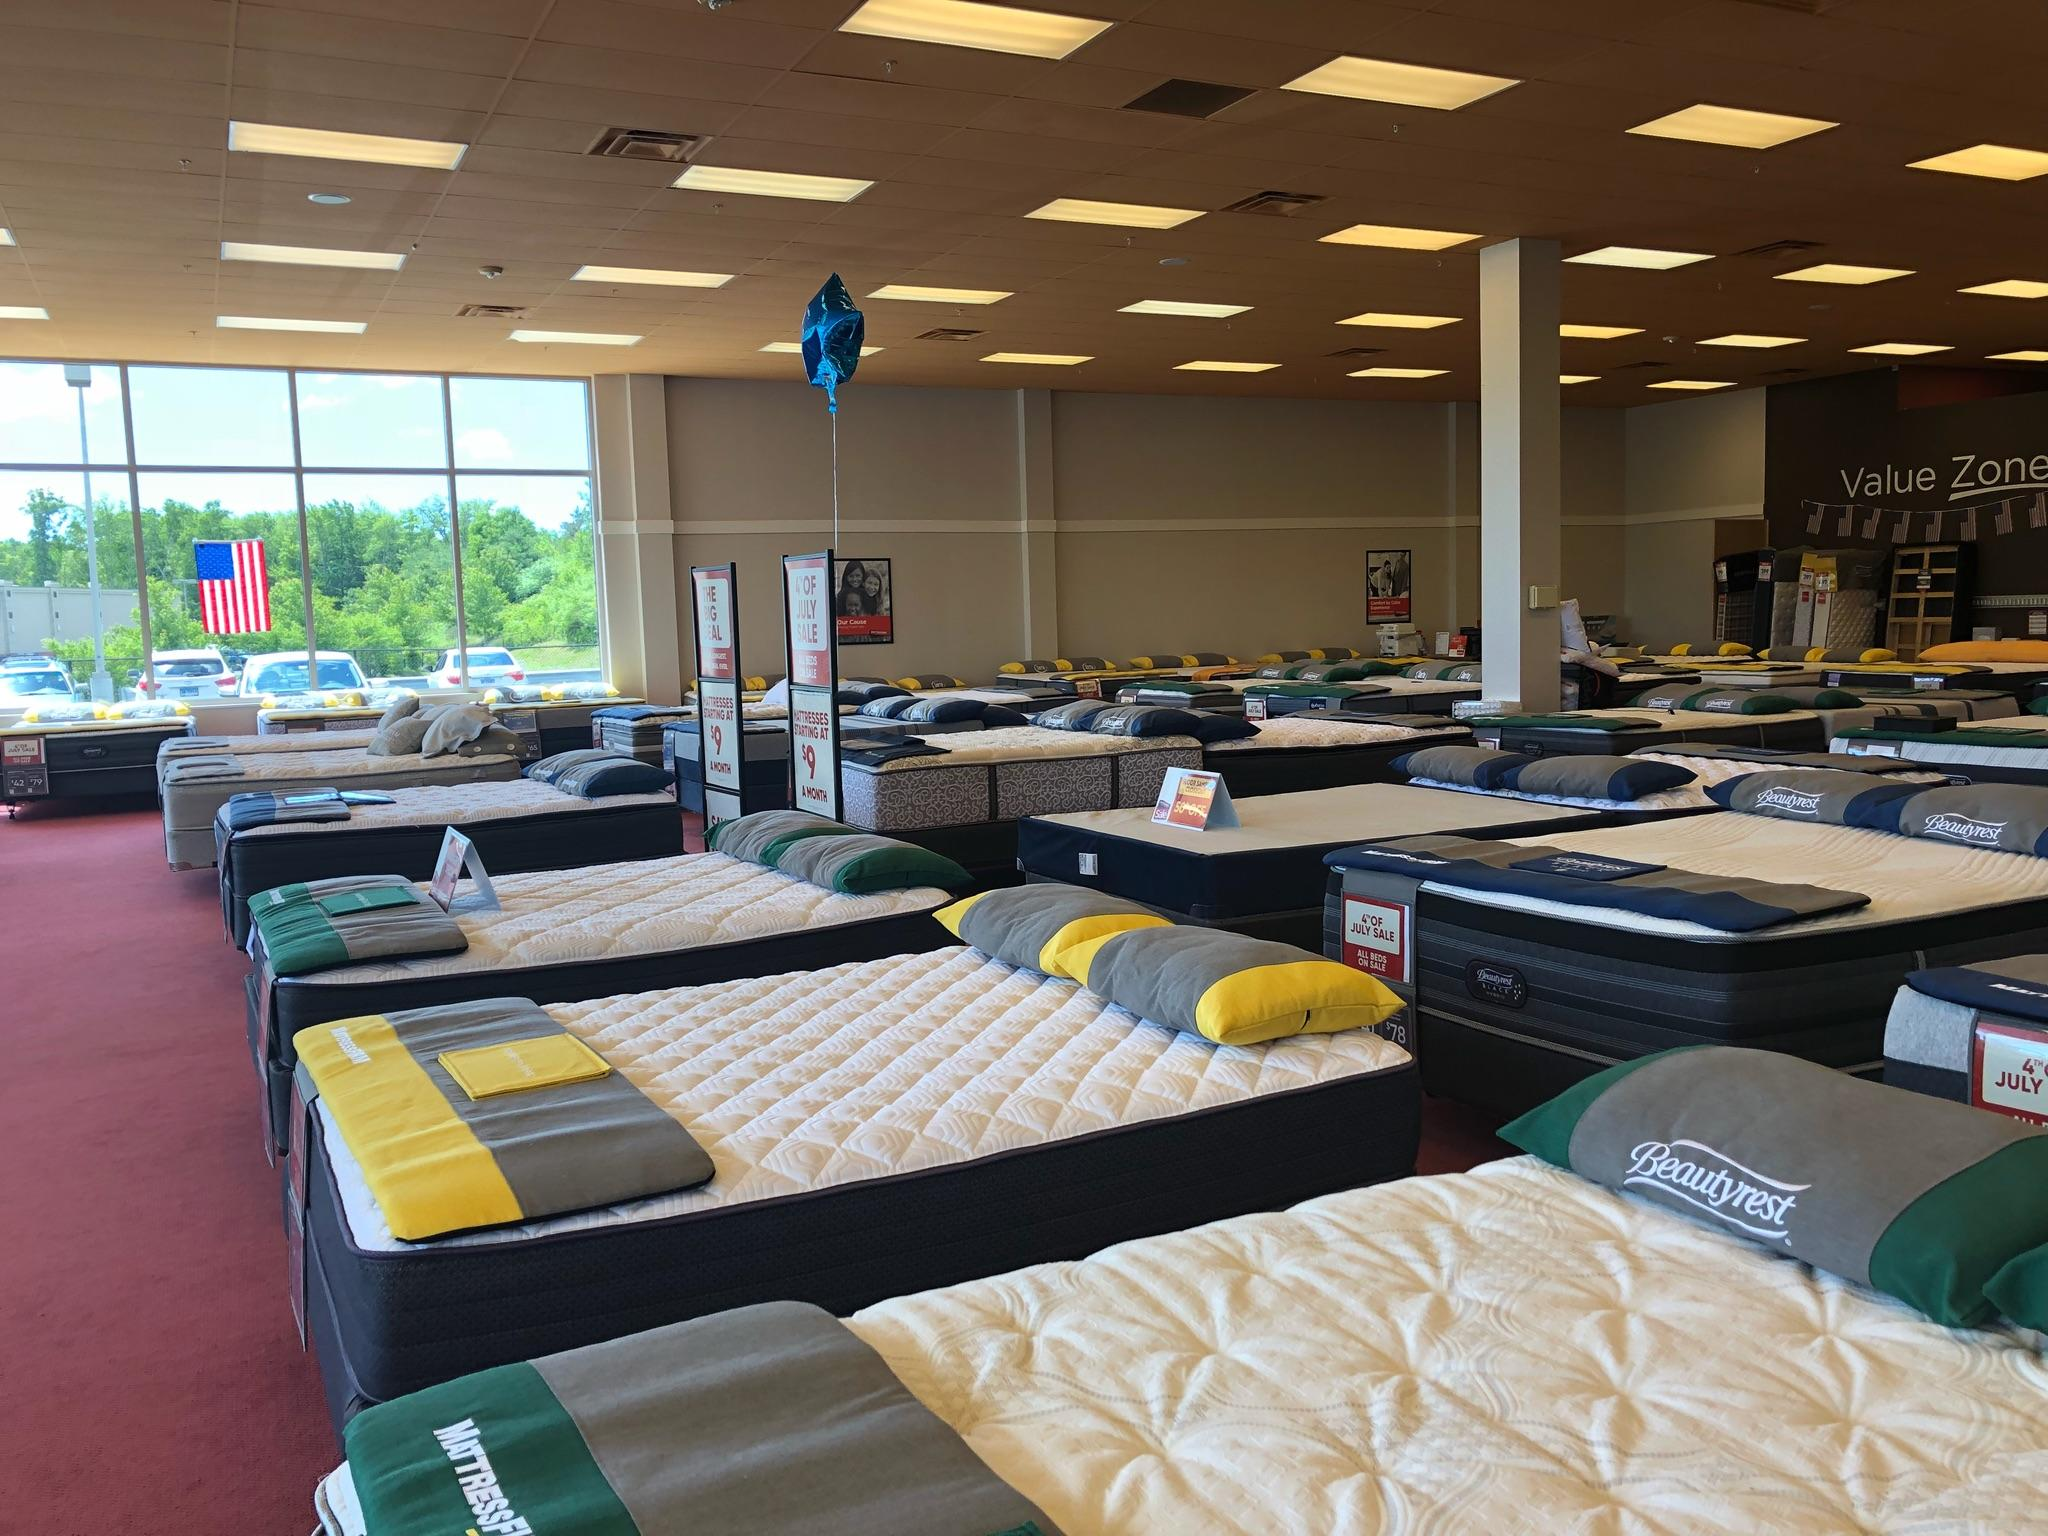 Mattress Firm Torrington image 3